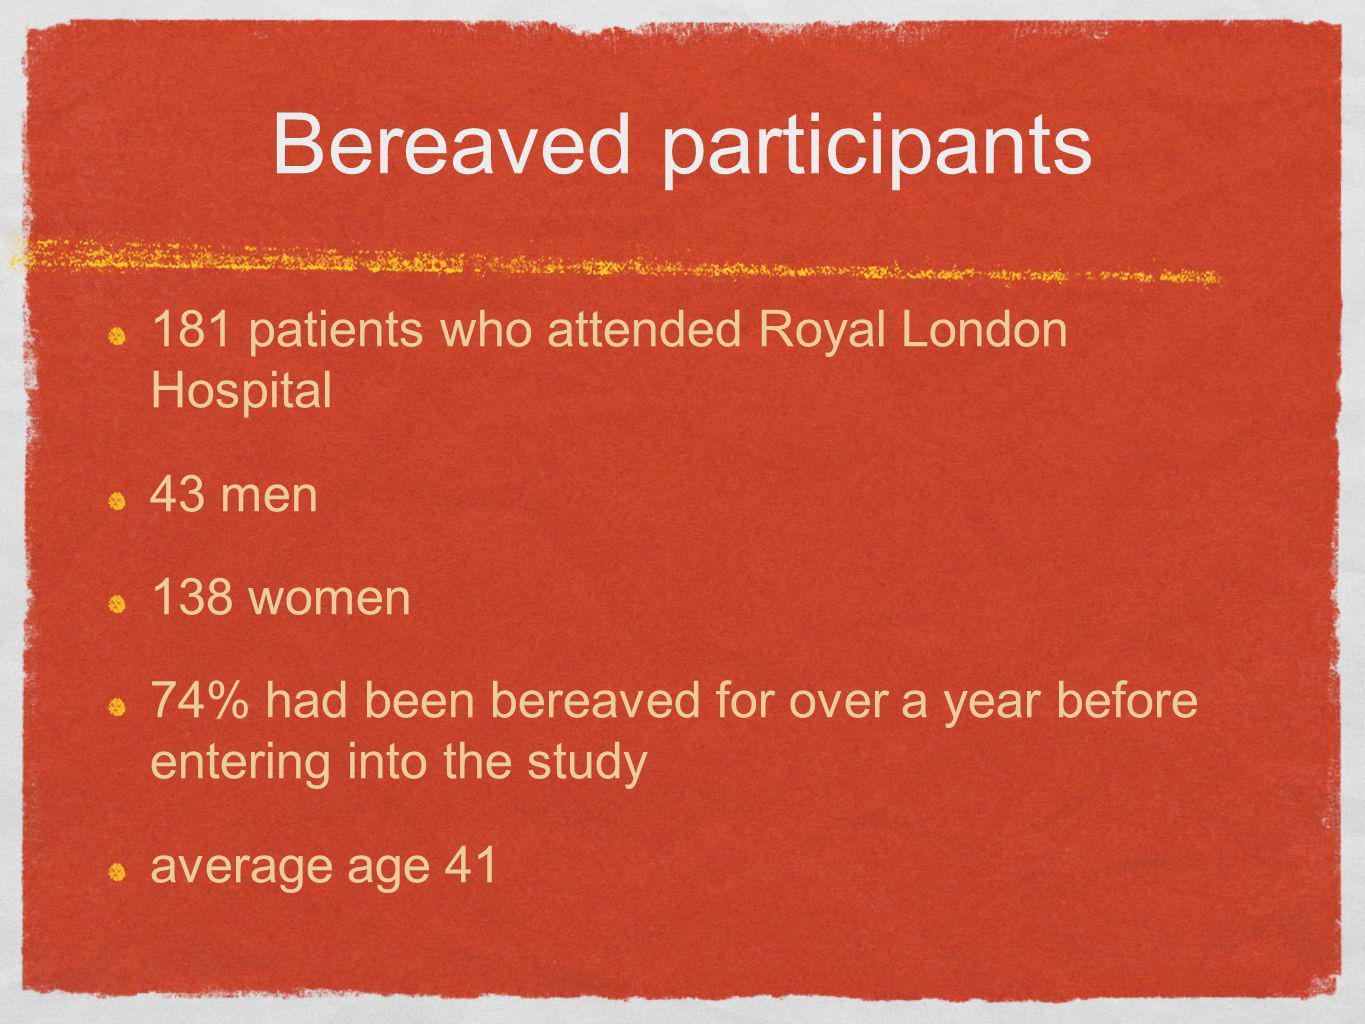 Bereaved participants 181 patients who attended Royal London Hospital 43 men 138 women 74% had been bereaved for over a year before entering into the study average age 41